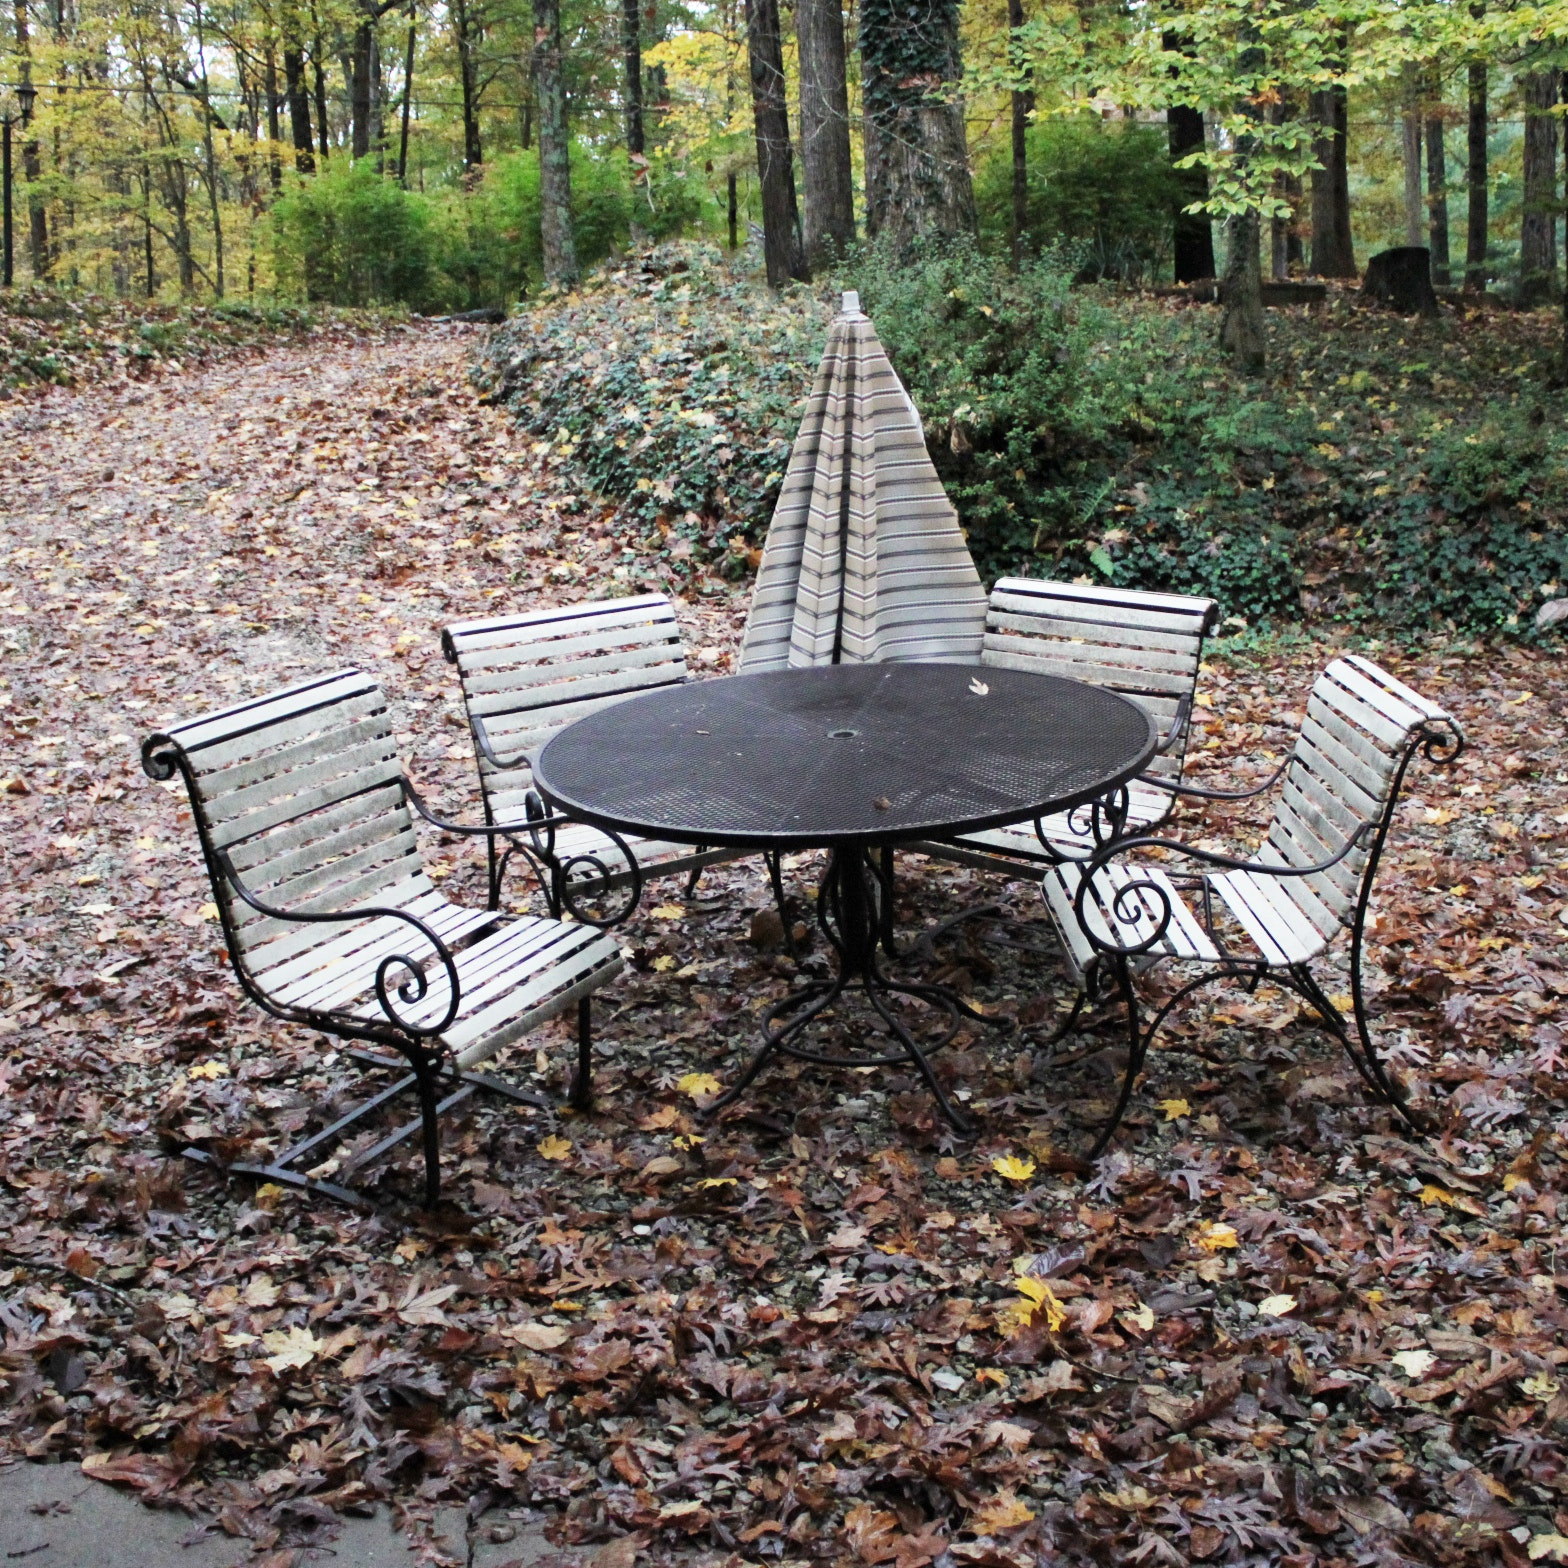 Metal Patio Table with Umbrella and Chairs